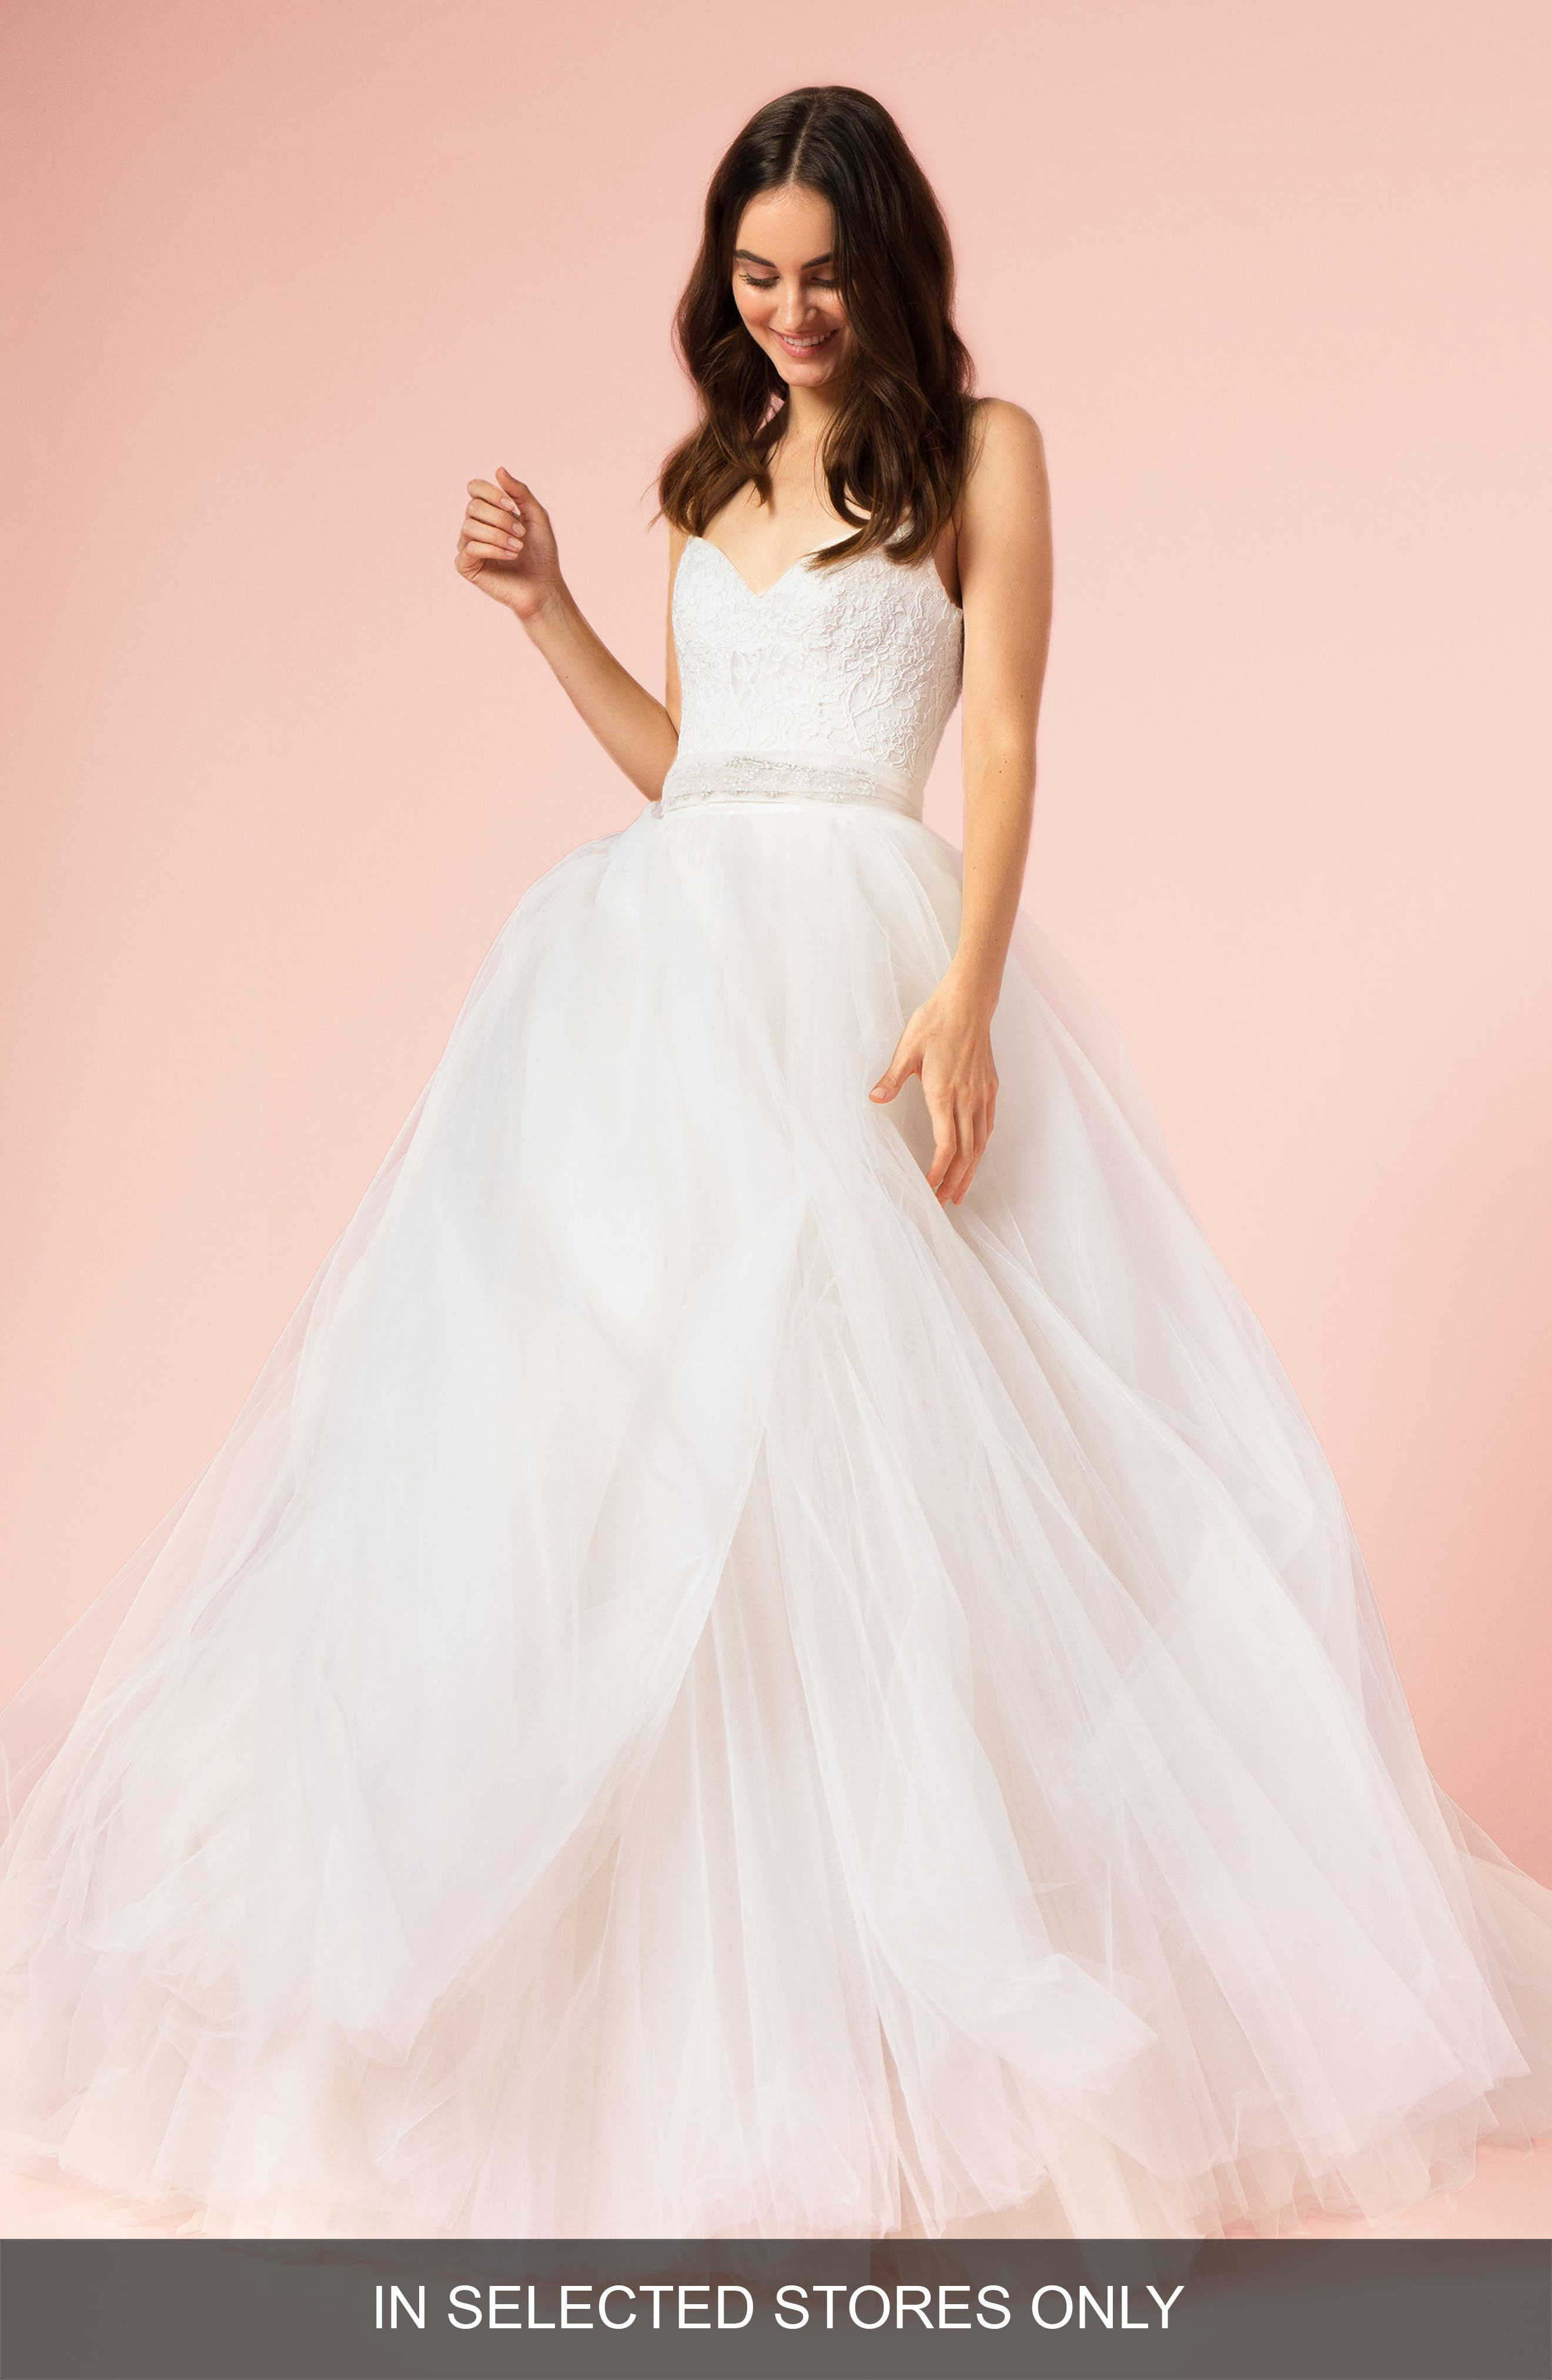 BLISS Monique Lhuillier Spaghetti Strap Lace & Tulle Ball Gown